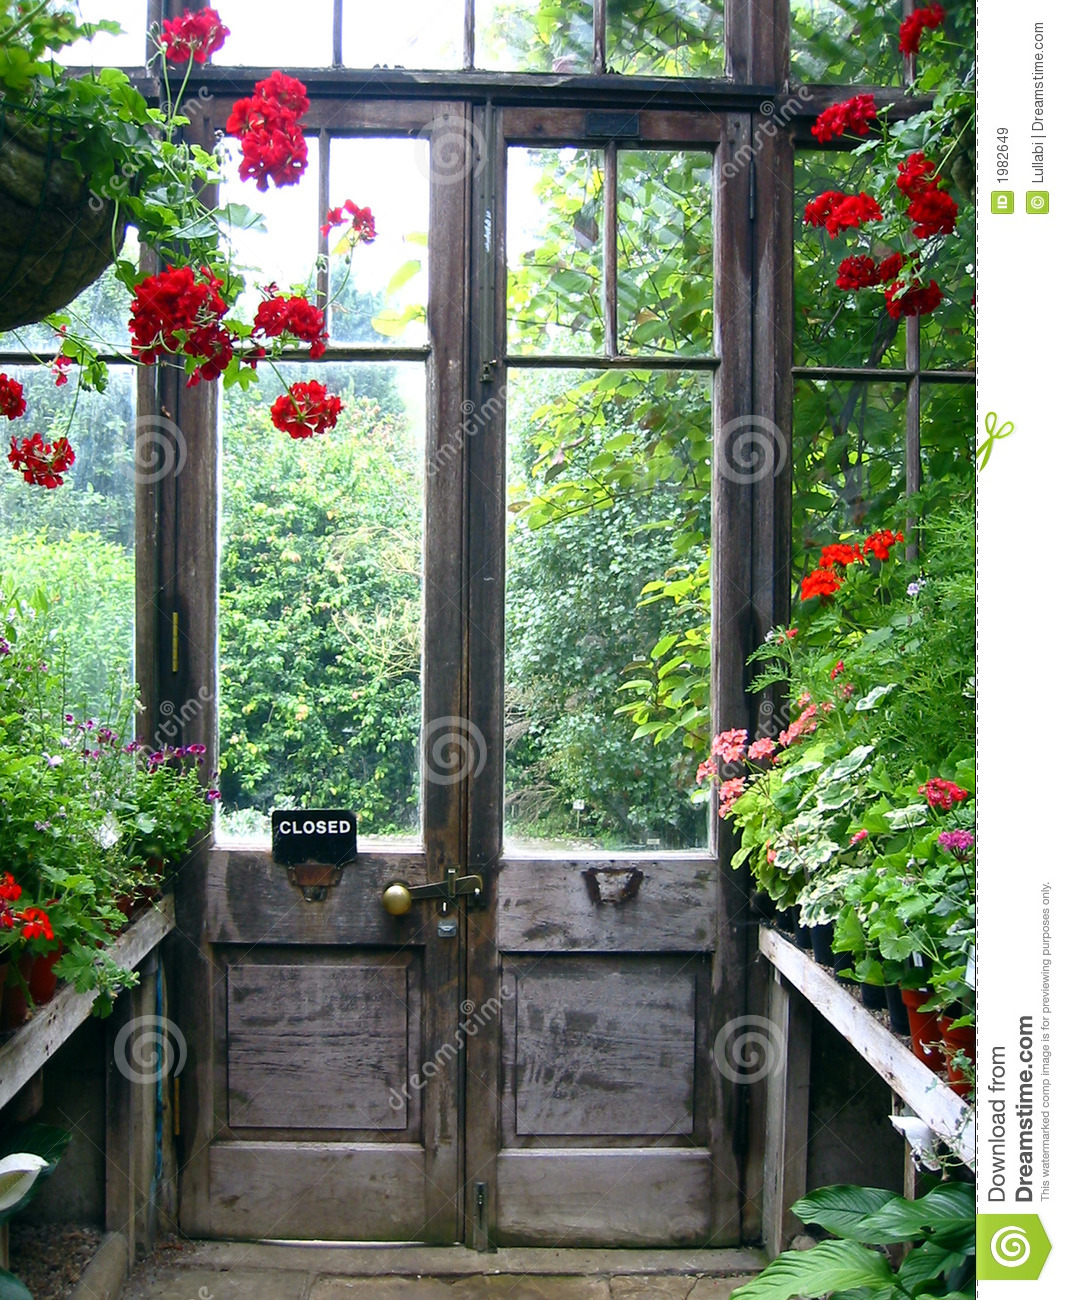 Closed door in a secret garden royalty free stock images for Closed loop gardening